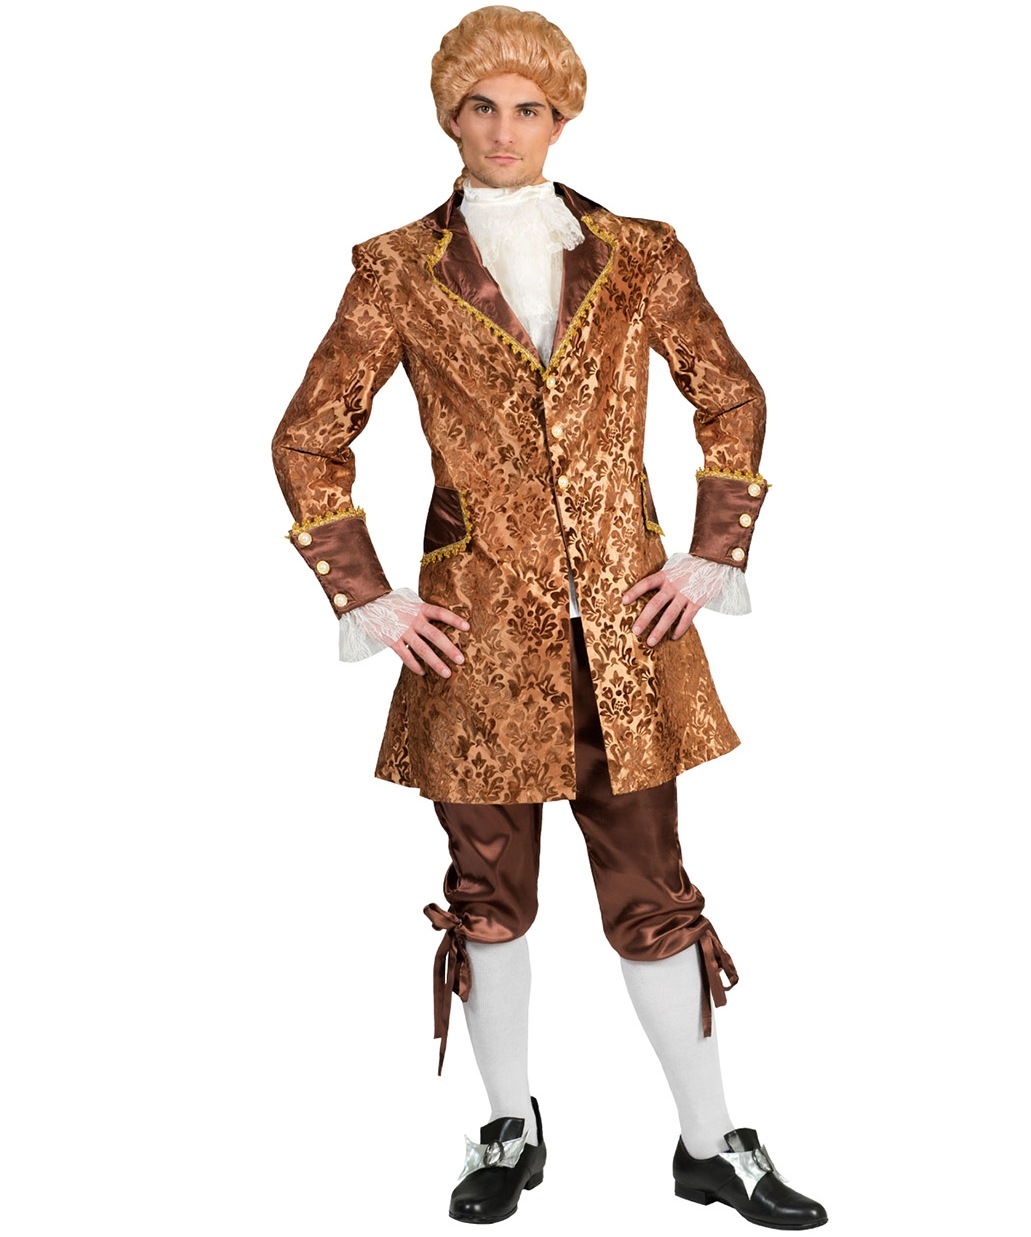 BAROQUE BARTOLI COSTUME FOR MEN